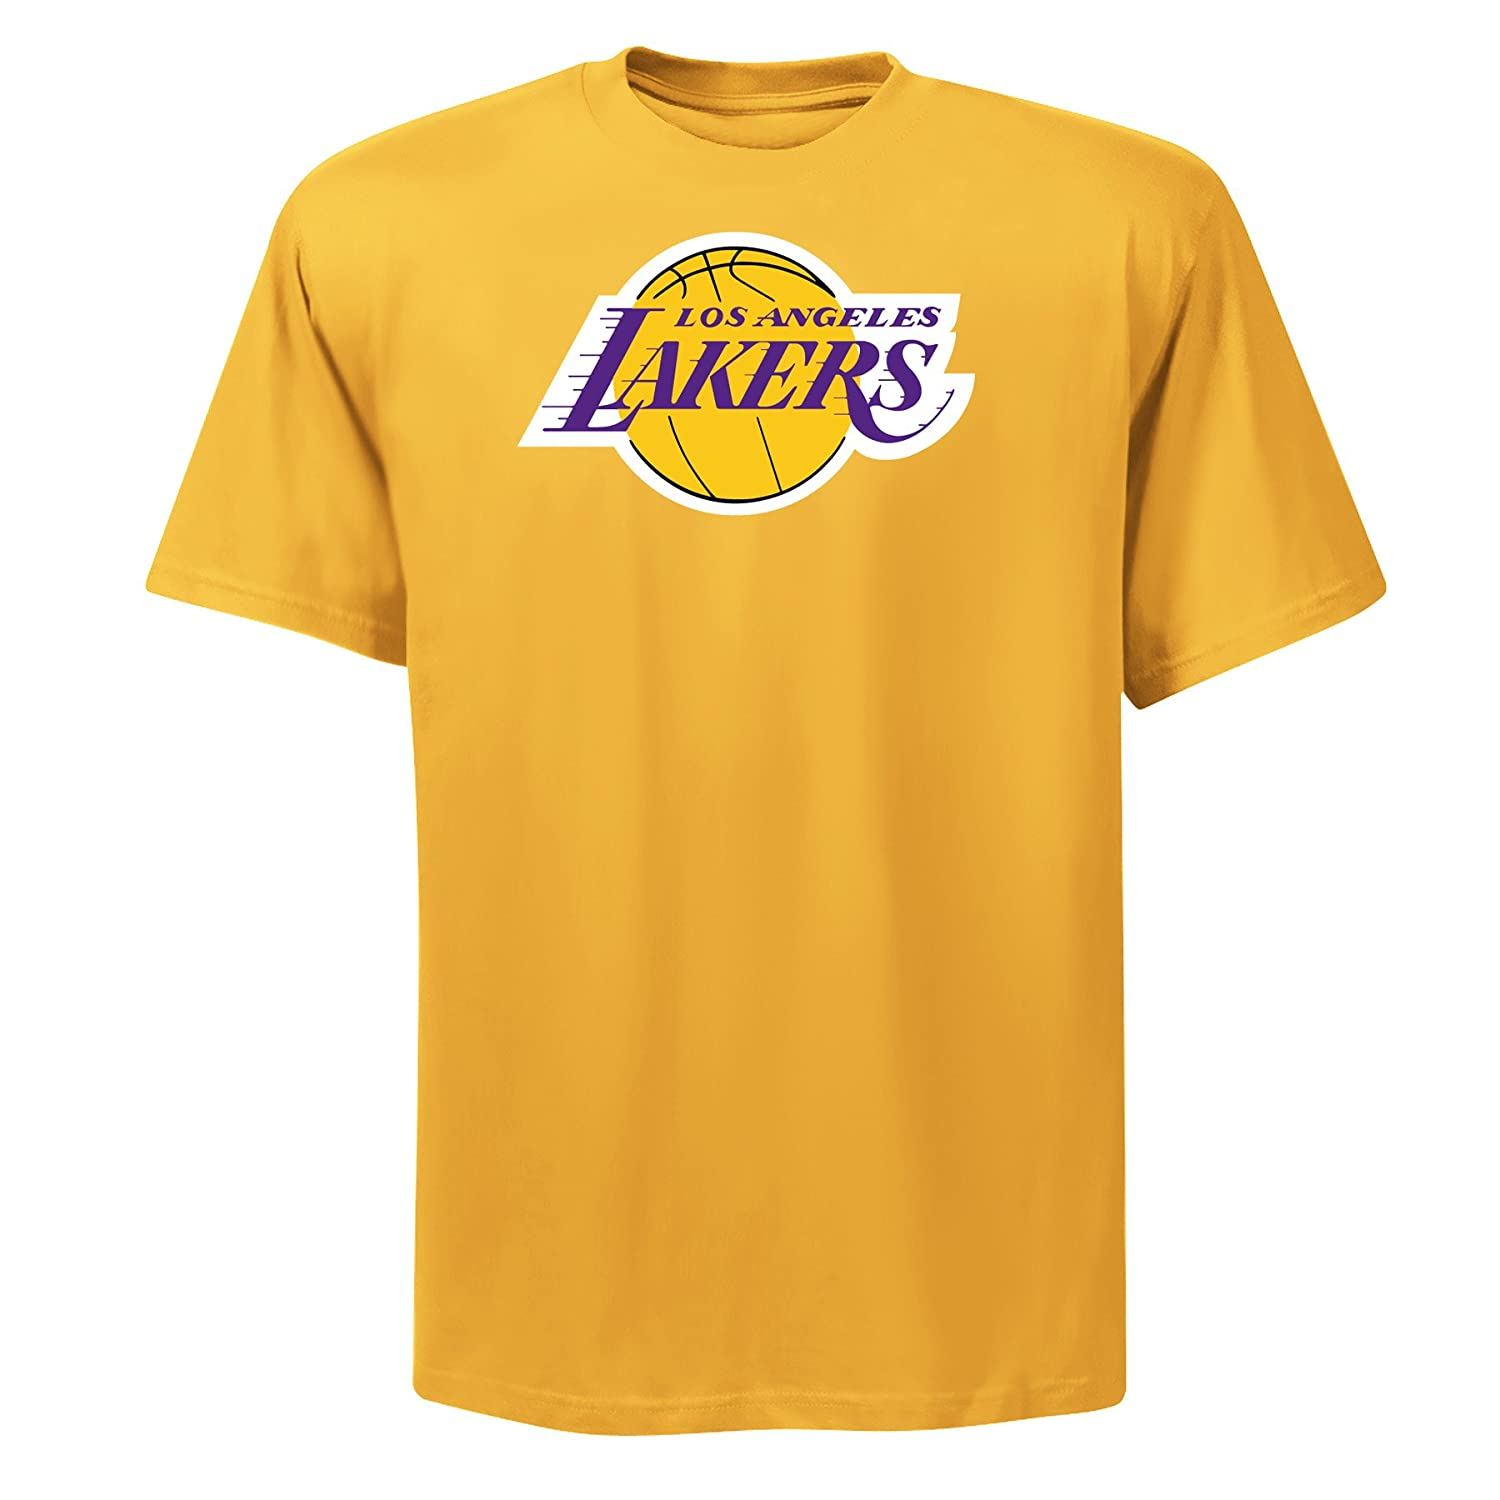 NBA para hombre los angeles lakers Magic Johnson reproductor nombre y # Oro Amarillo manga corta para Basic camiseta por Majestic - M954-0599-HCN-213, ...